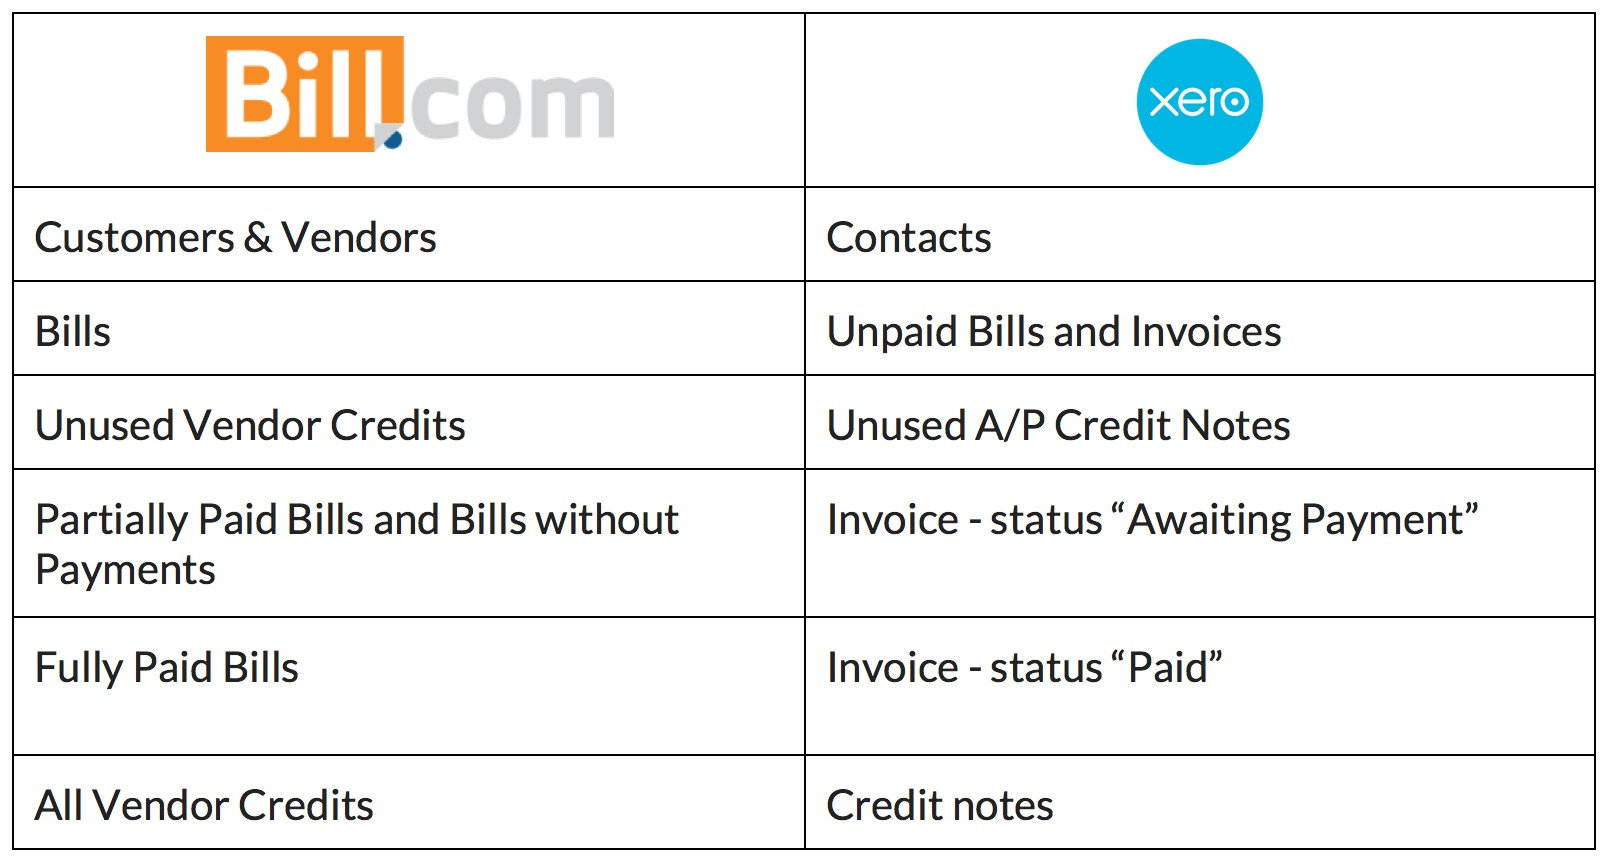 xero-billcom-table